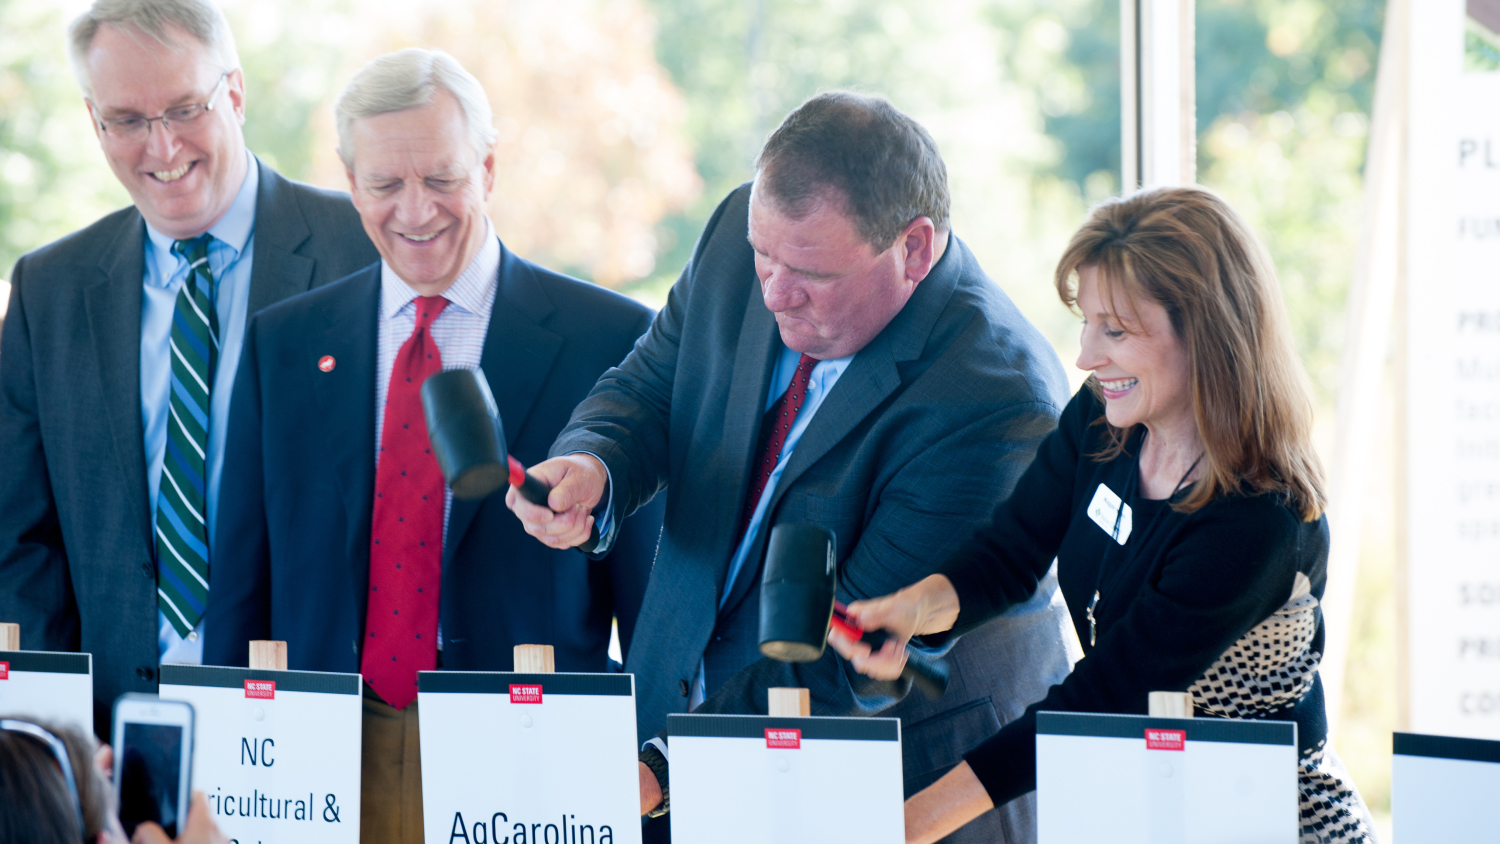 Four stakeholders, pounding stakes into the ground with rubber mallets